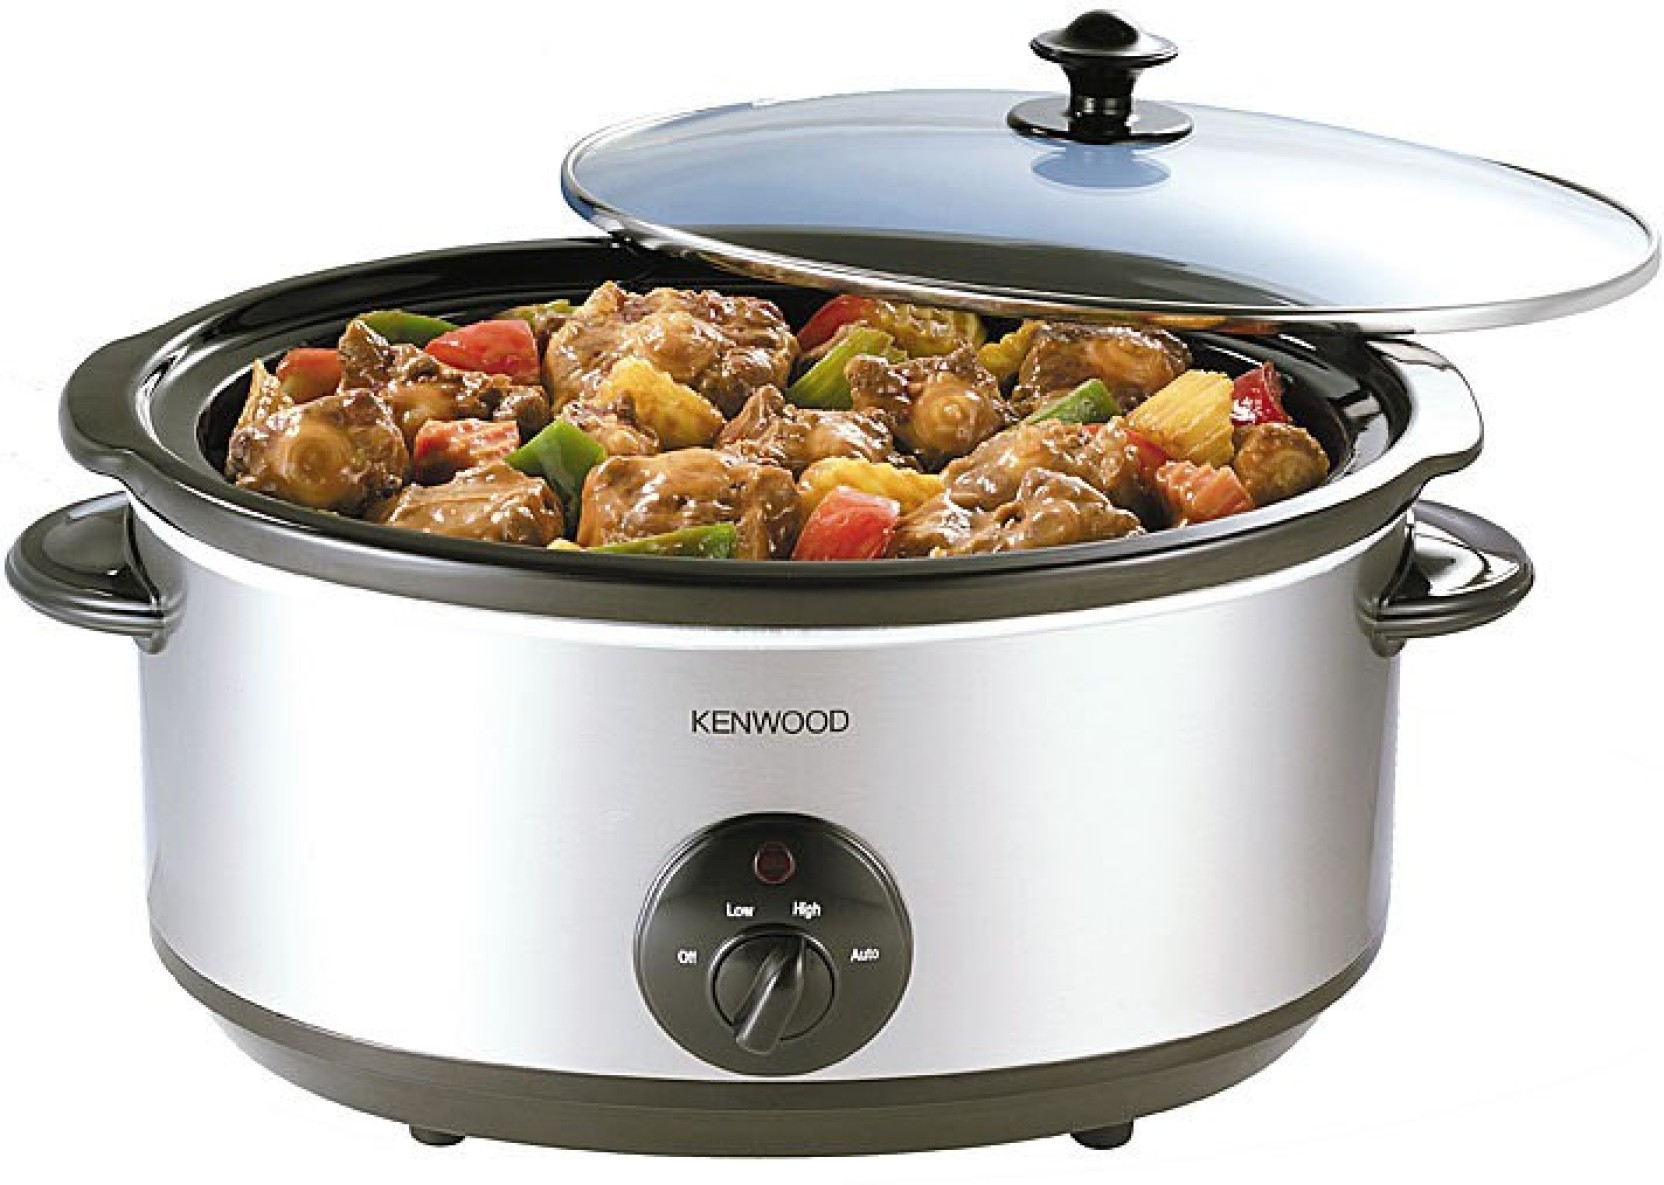 Kenwood Cp 657 Slow Cooker. Share